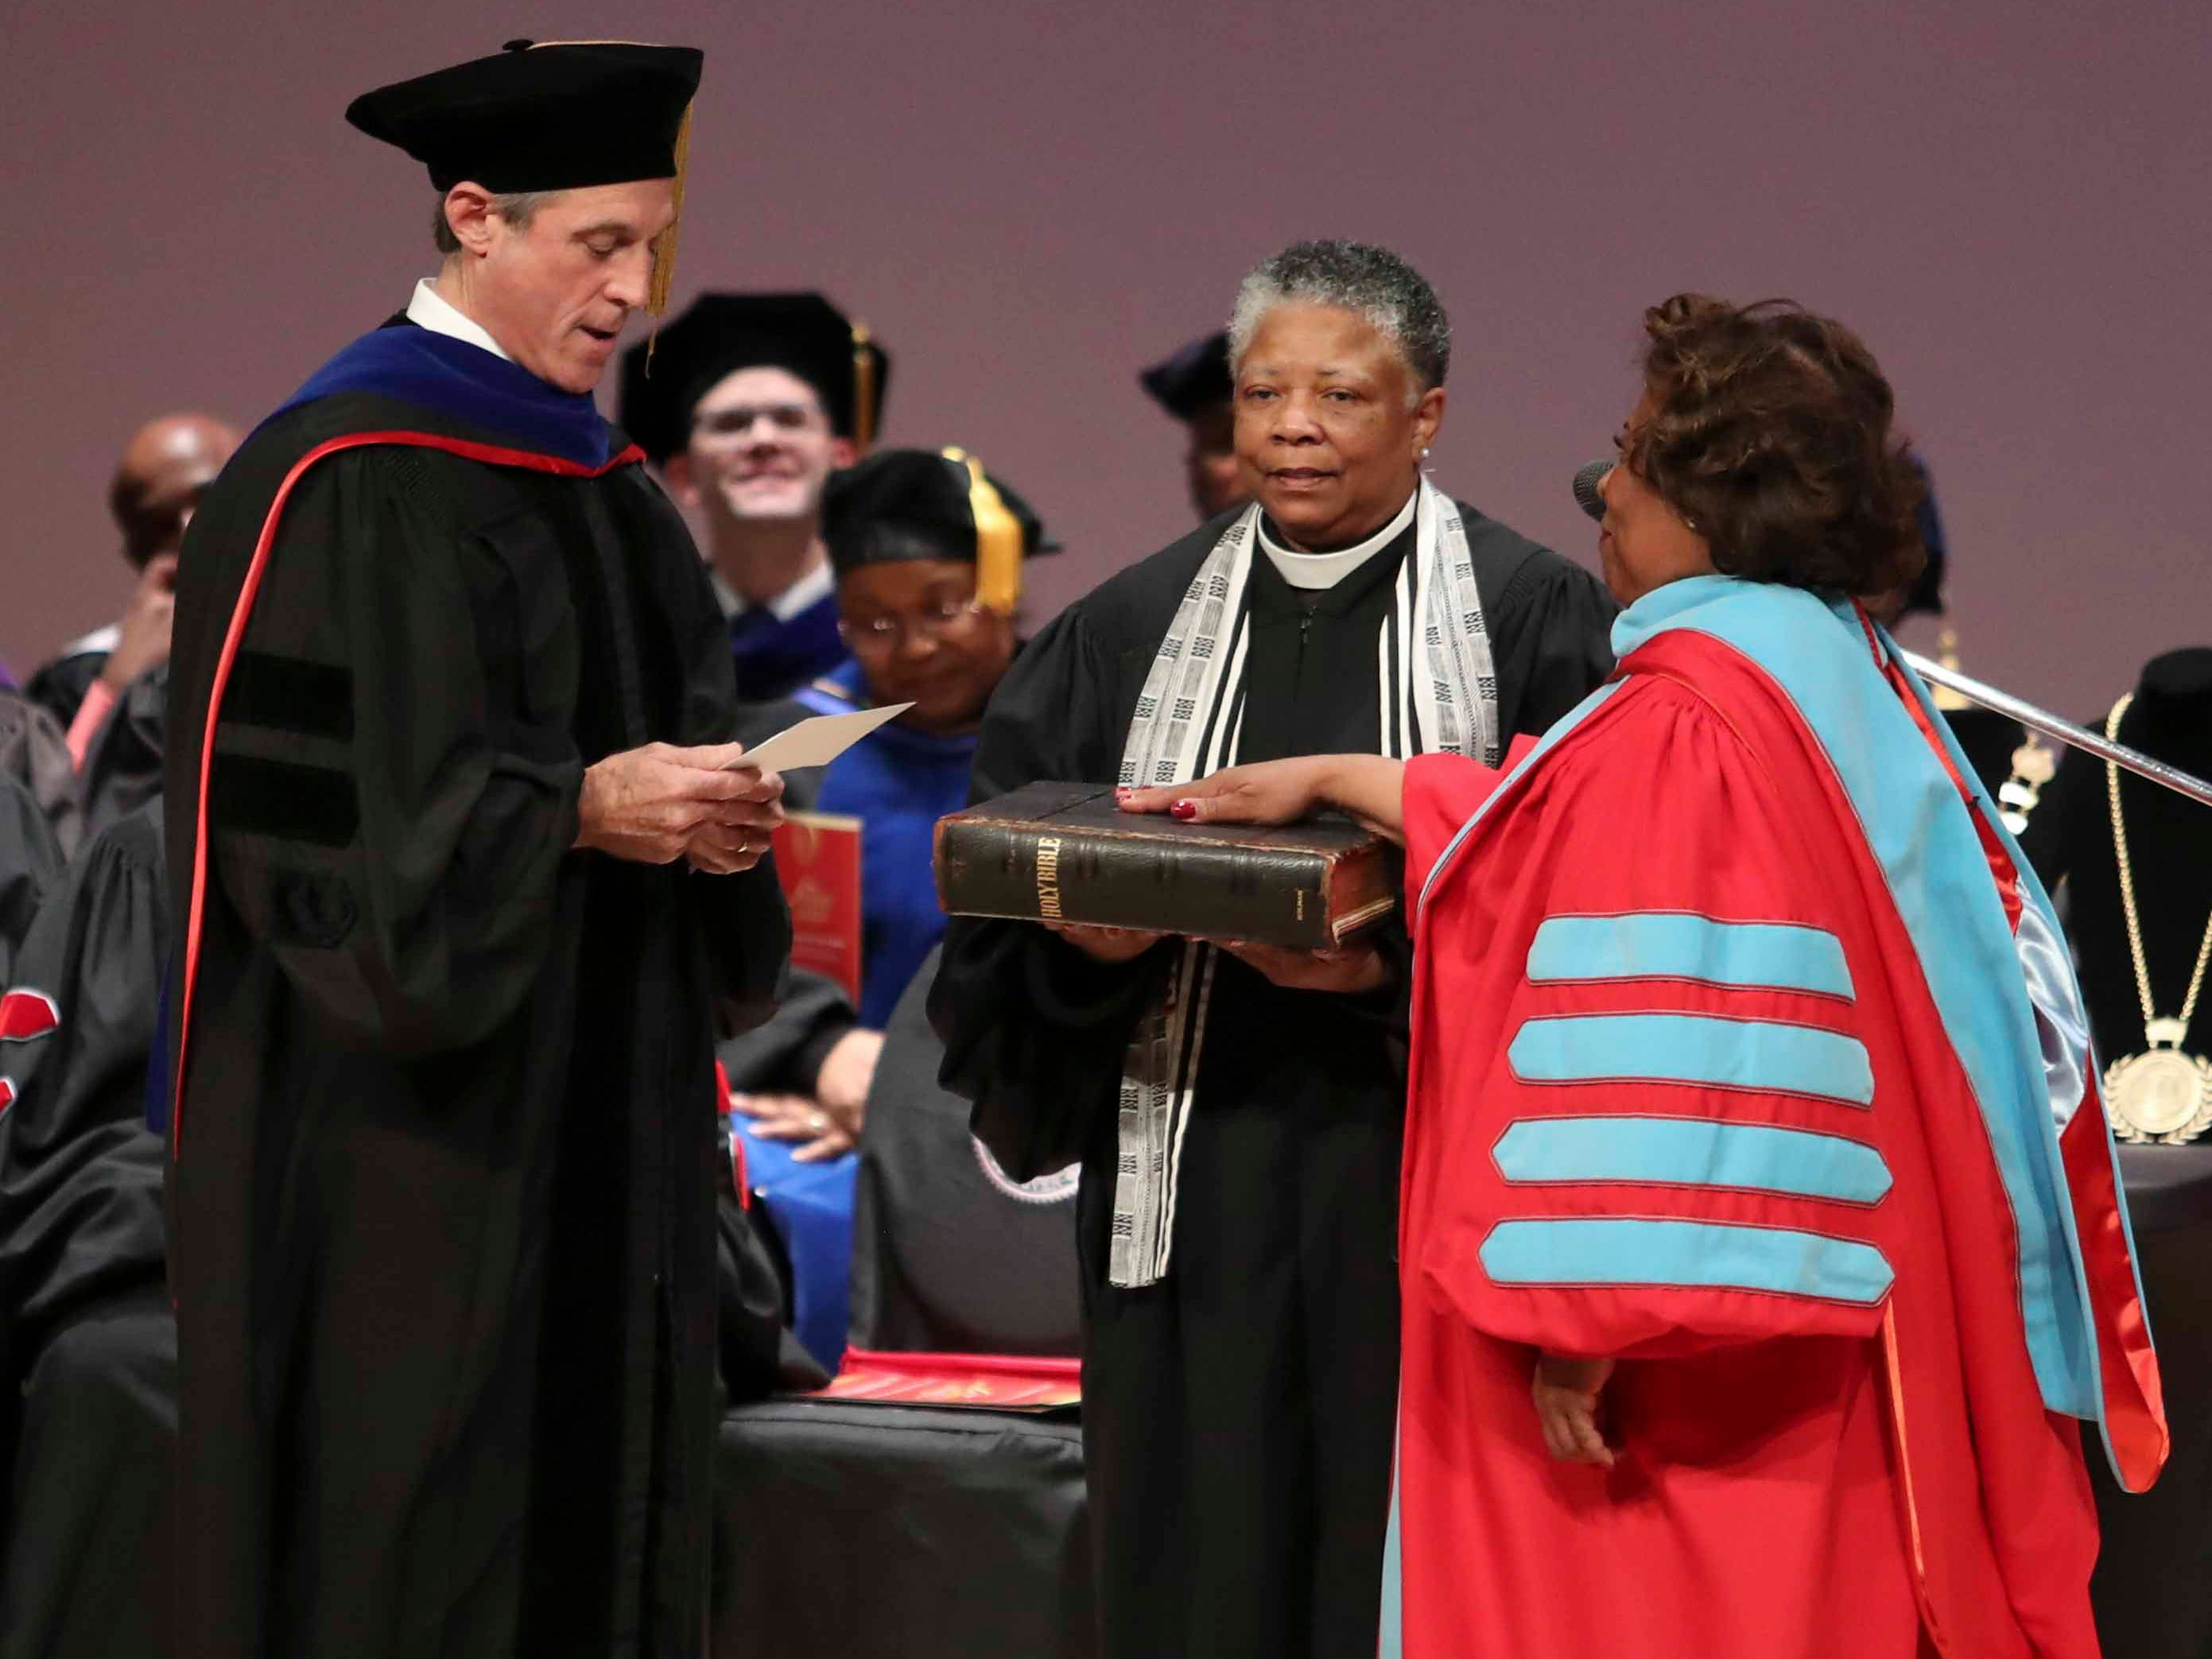 Wilma Mishoe is administered the oath of office from Gov. John Carney as her sister, Rev. Rita Mishoe Paige, holds a bible while Mishoe is formally conferred with the presidency of Delaware State University in an investiture ceremony Saturday at the Dover campus. Mishoe, a daughter of the university's 7th president, had been interim president since January before being named president in July. She is the university's 11th president and first woman president.